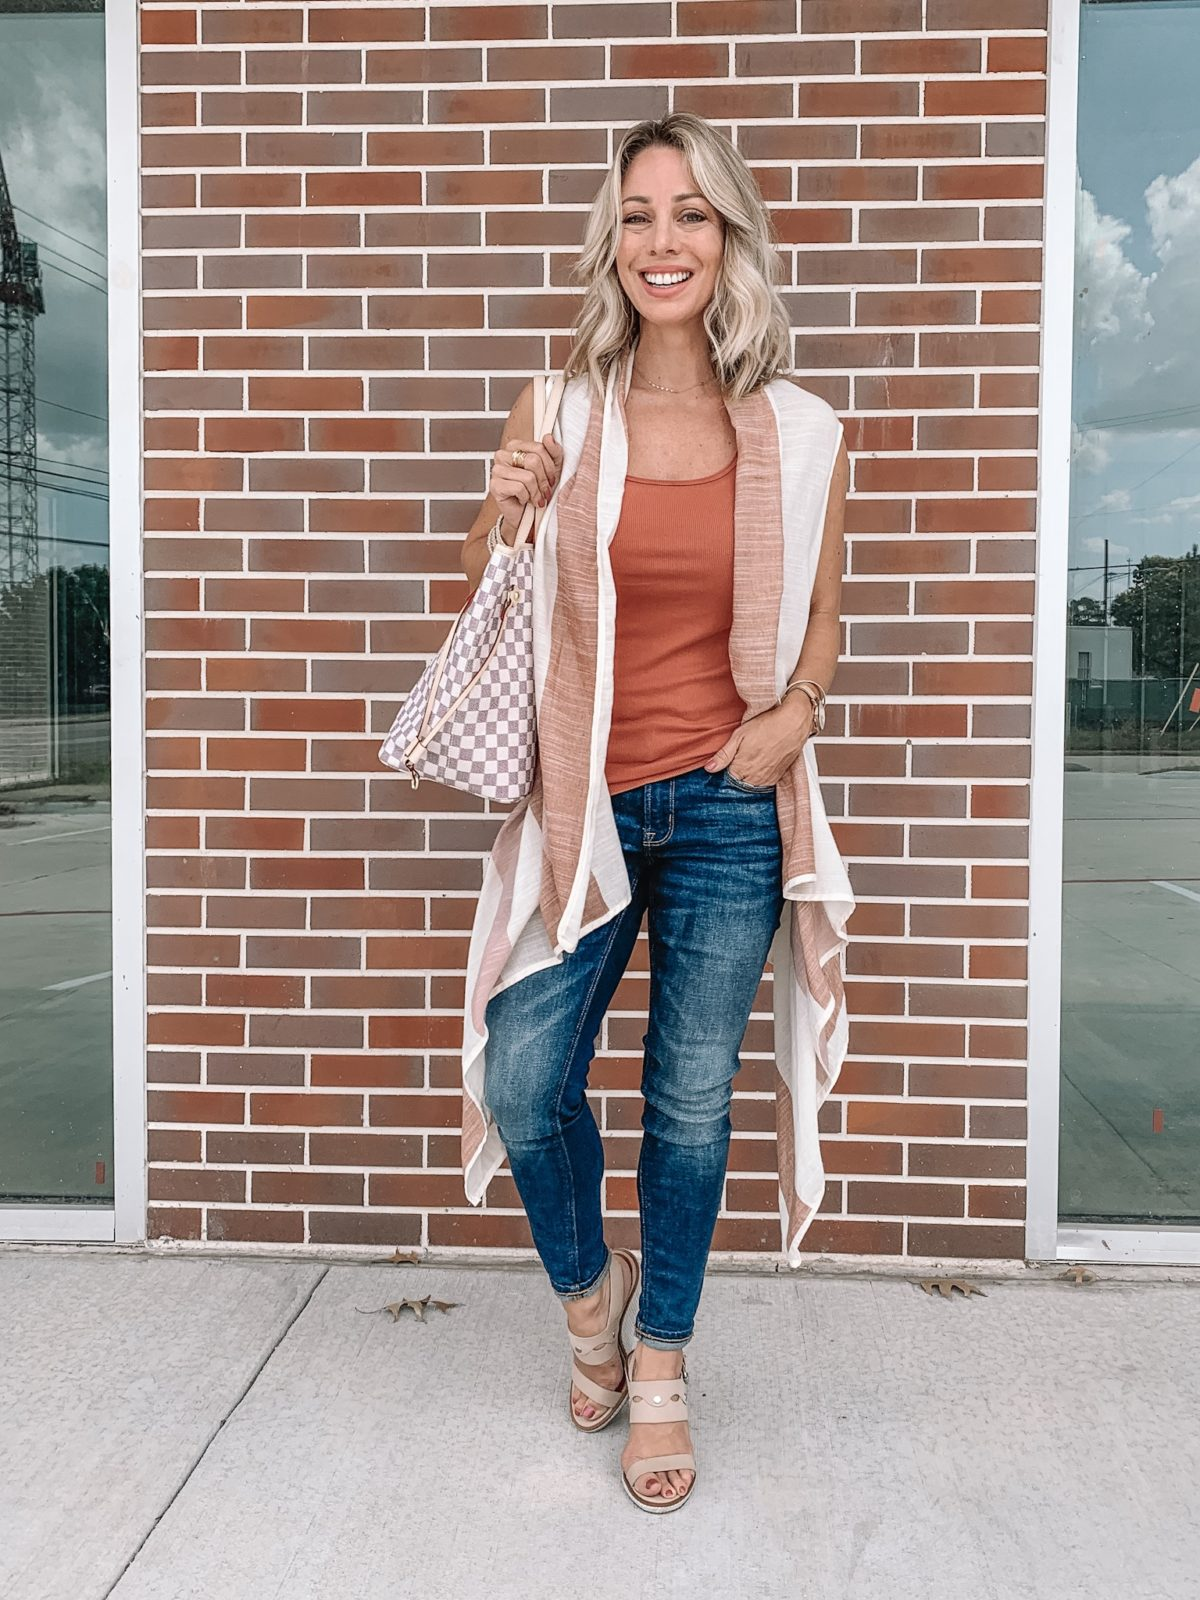 Kimono with Tank and Jeans